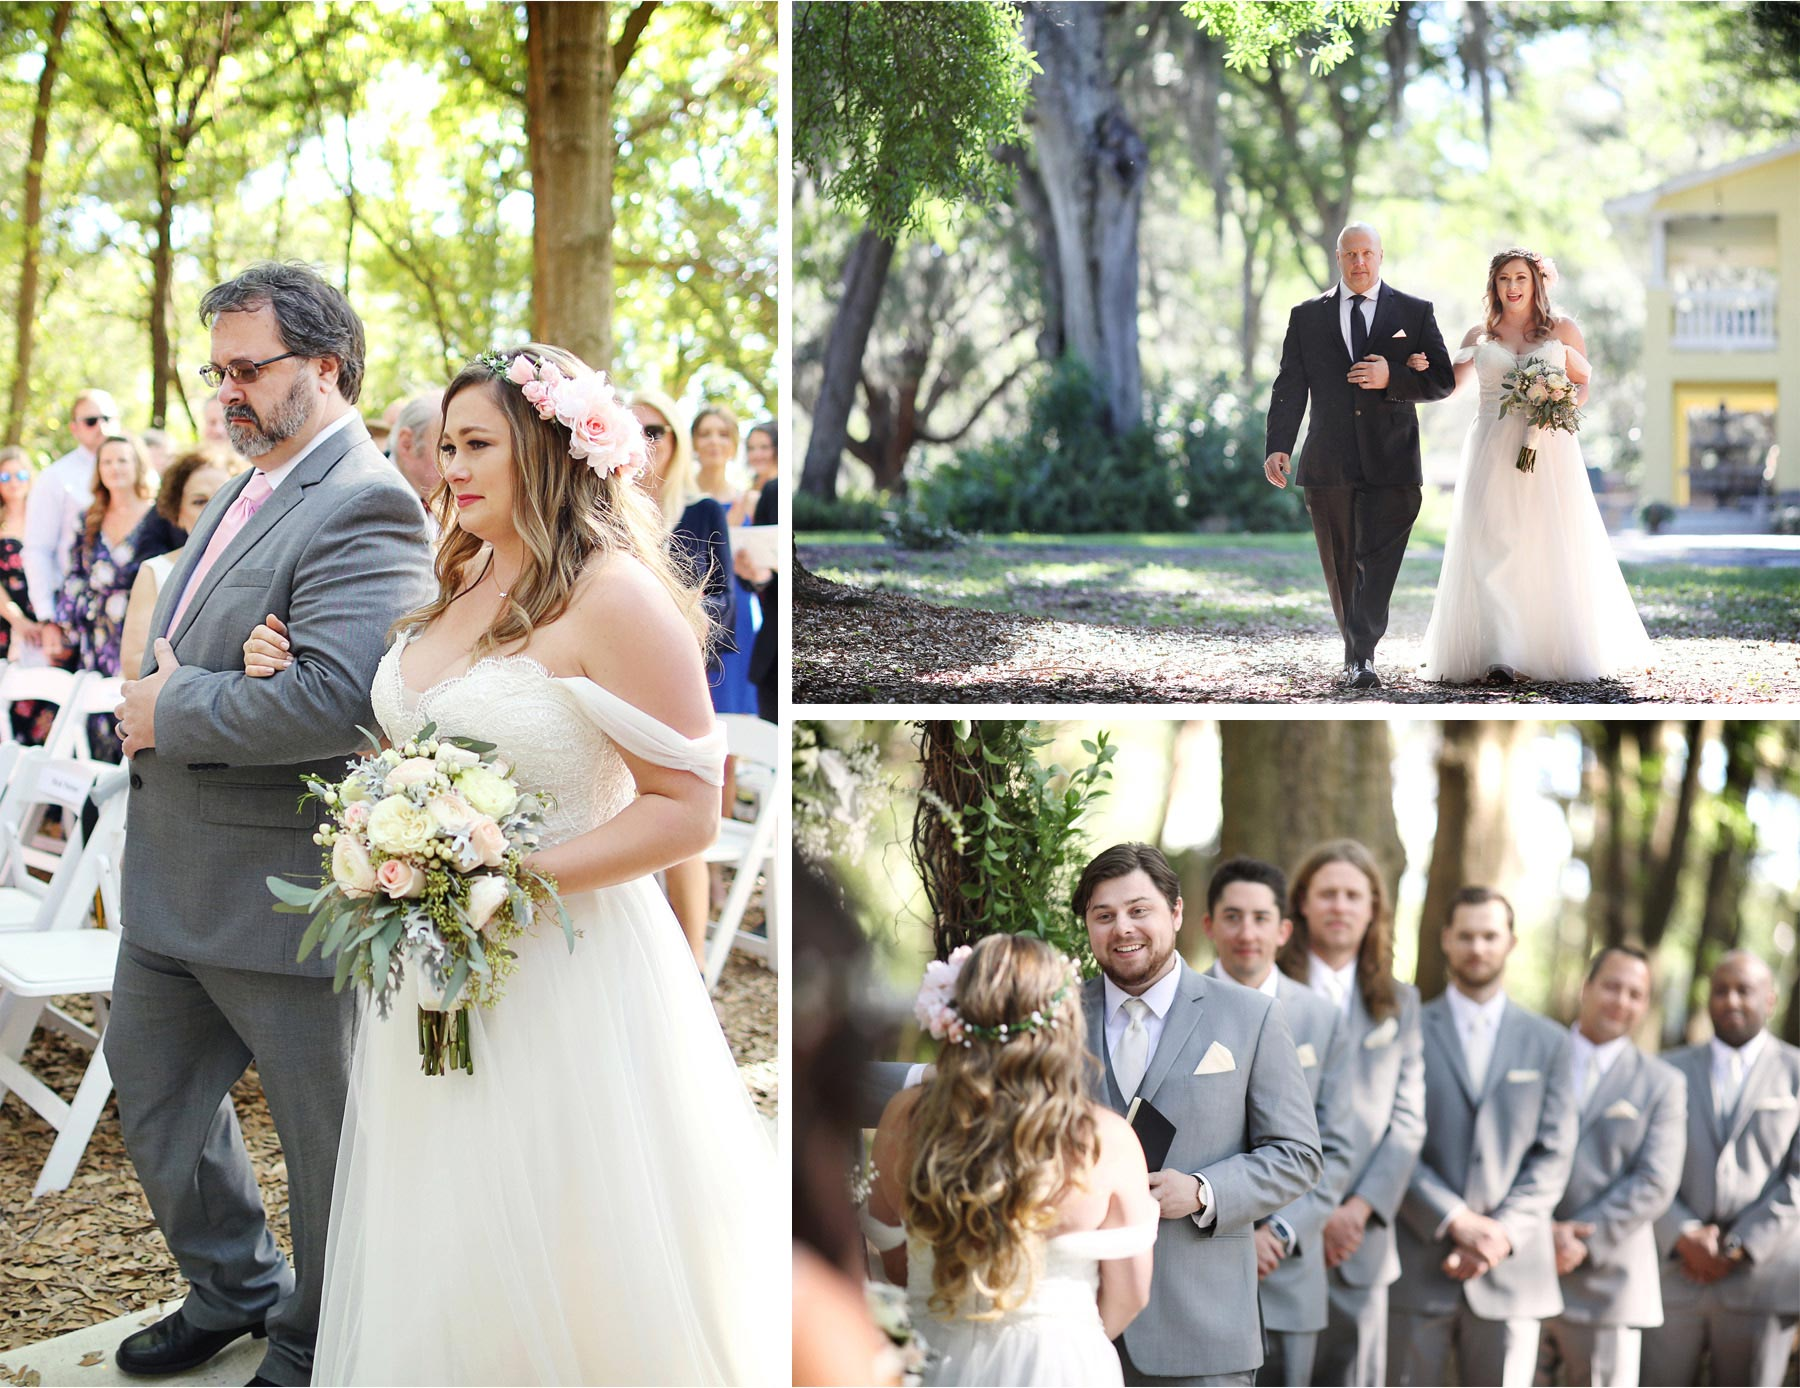 15-Brandon-Florida-Wedding-Photographer-by-Andrew-Vick-Photography-Casa-Lantana-Spring-Ceremony-Bride-Groom-Father-Parents-Processional-Flower-Crown-Kristianna-and-Ben.jpg